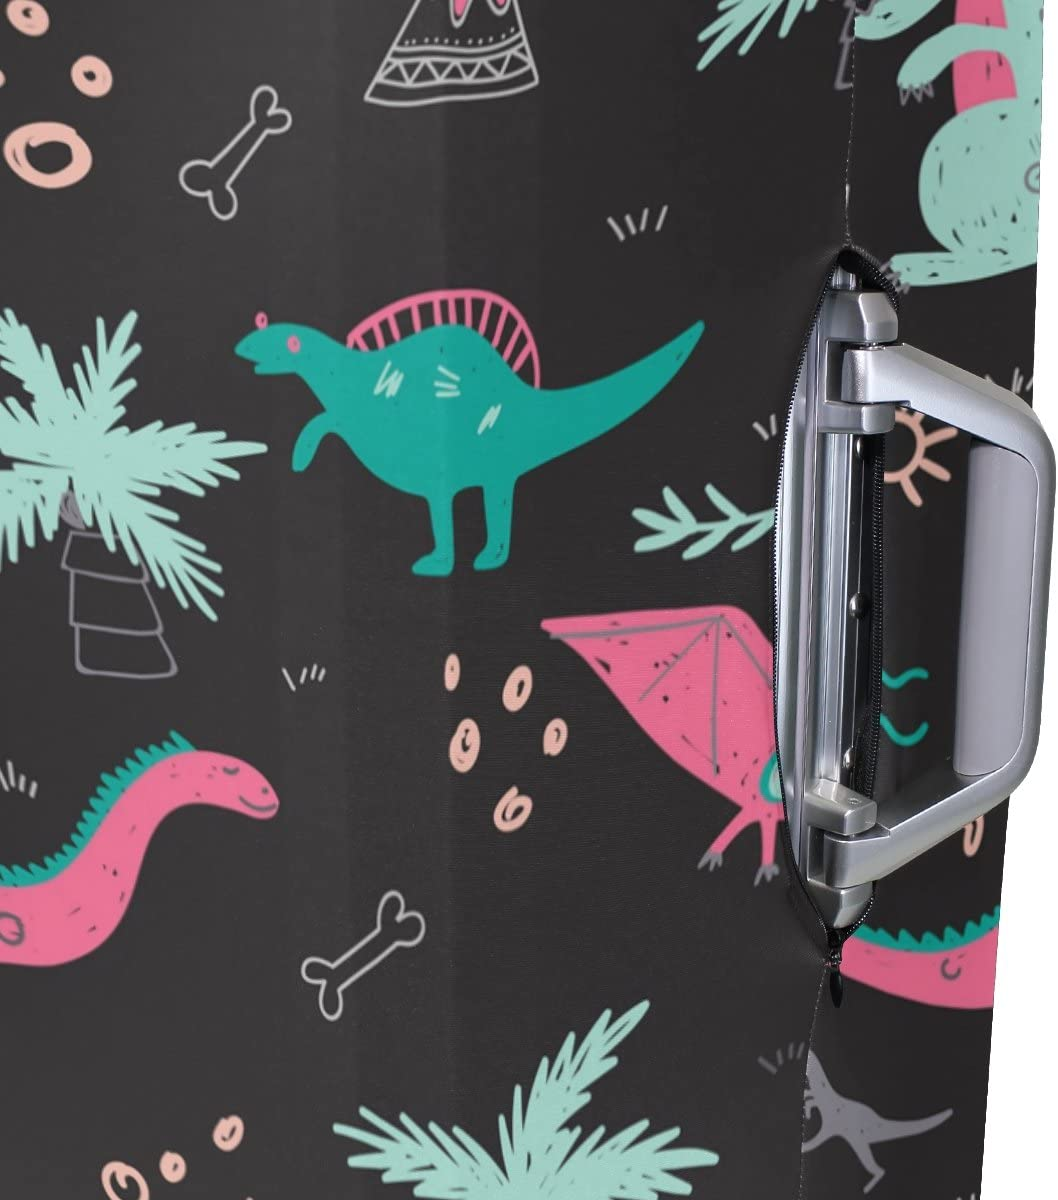 OREZI Luggage Protector Colorful Dinosaurs Travel Luggage Elastic Cover Suitcase Washable and Durable Anti-Scratch Stretchy Case Cover Fits 18-32 Inches